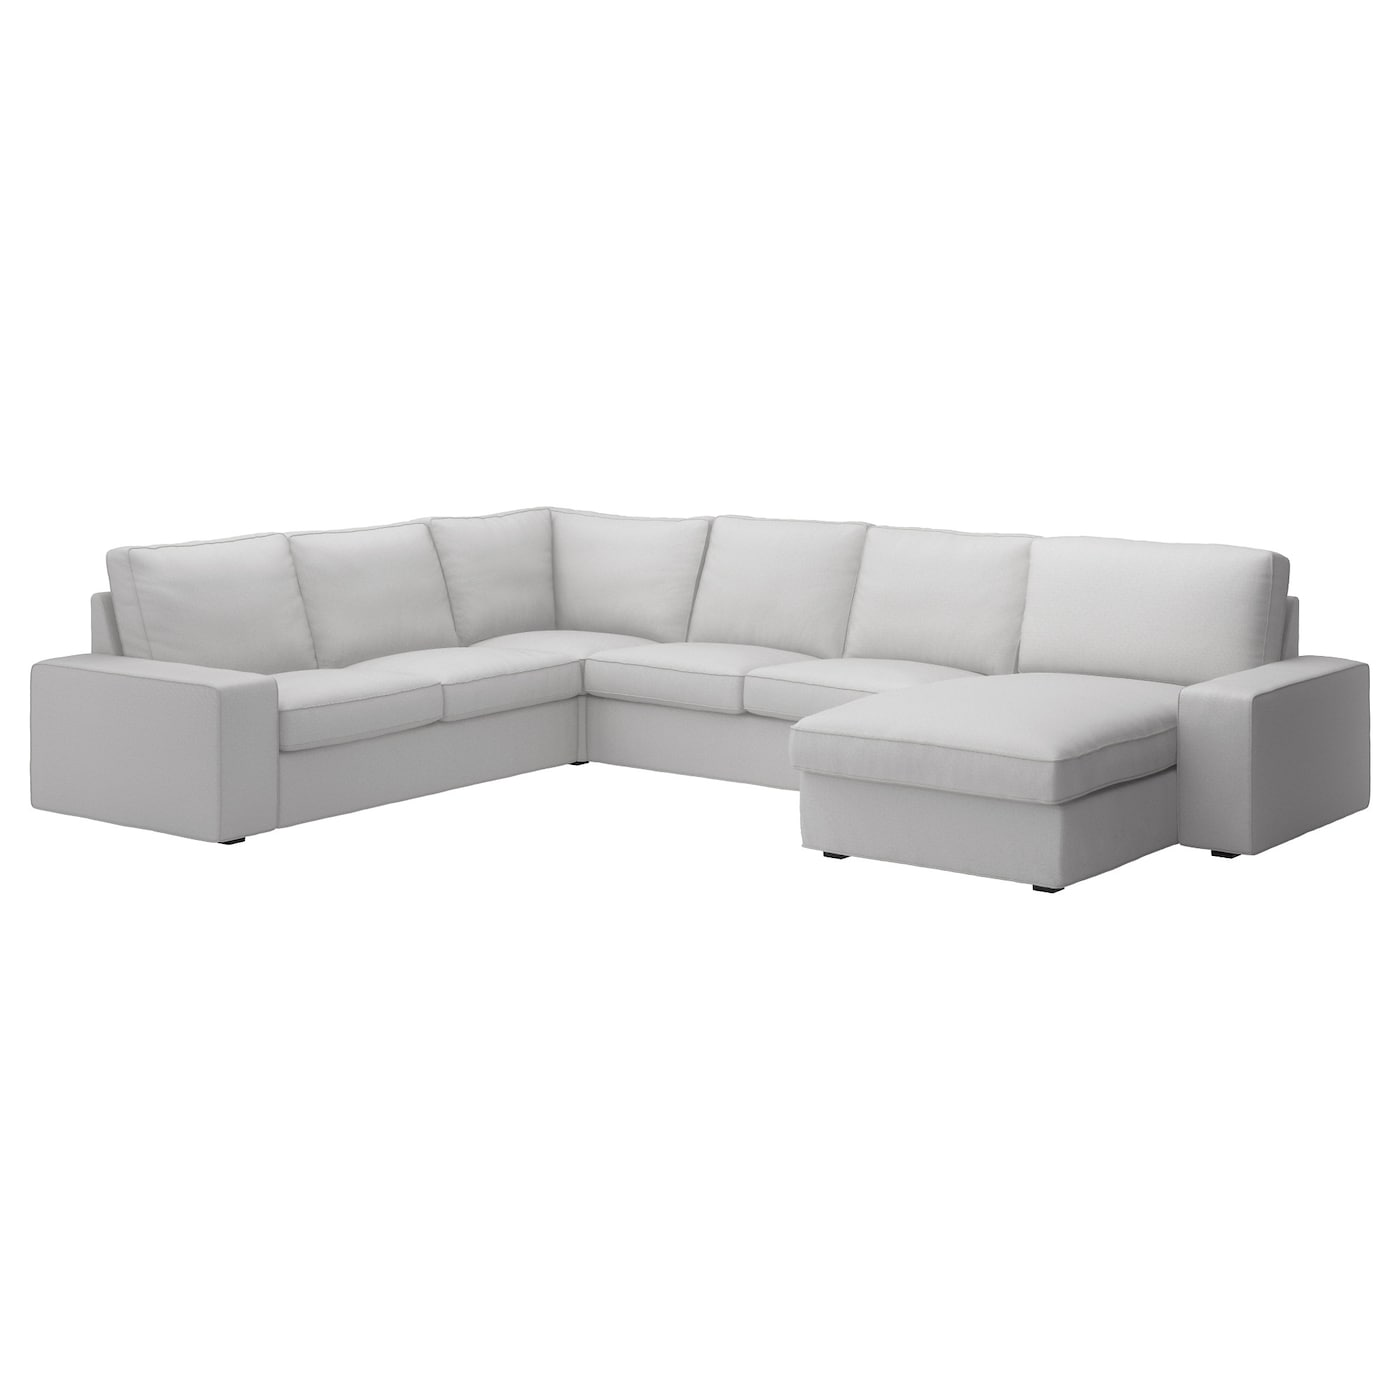 kivik corner sofa 2 2 with chaise longue ramna light grey